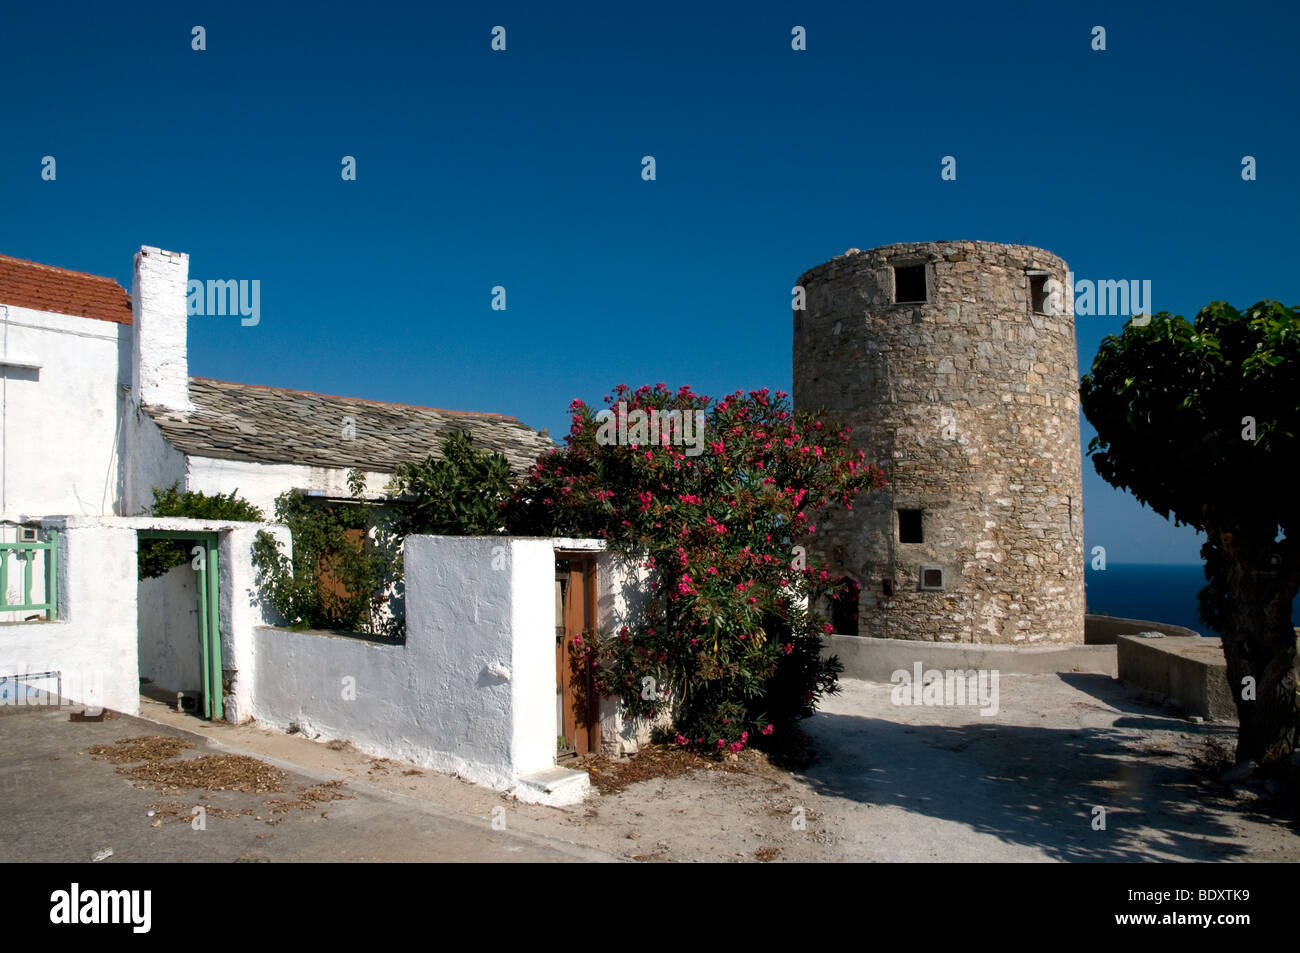 Old Town Alonissos. hora , old  town  scene with disused windmill now  converted to a home, Greek Islands - Stock Image